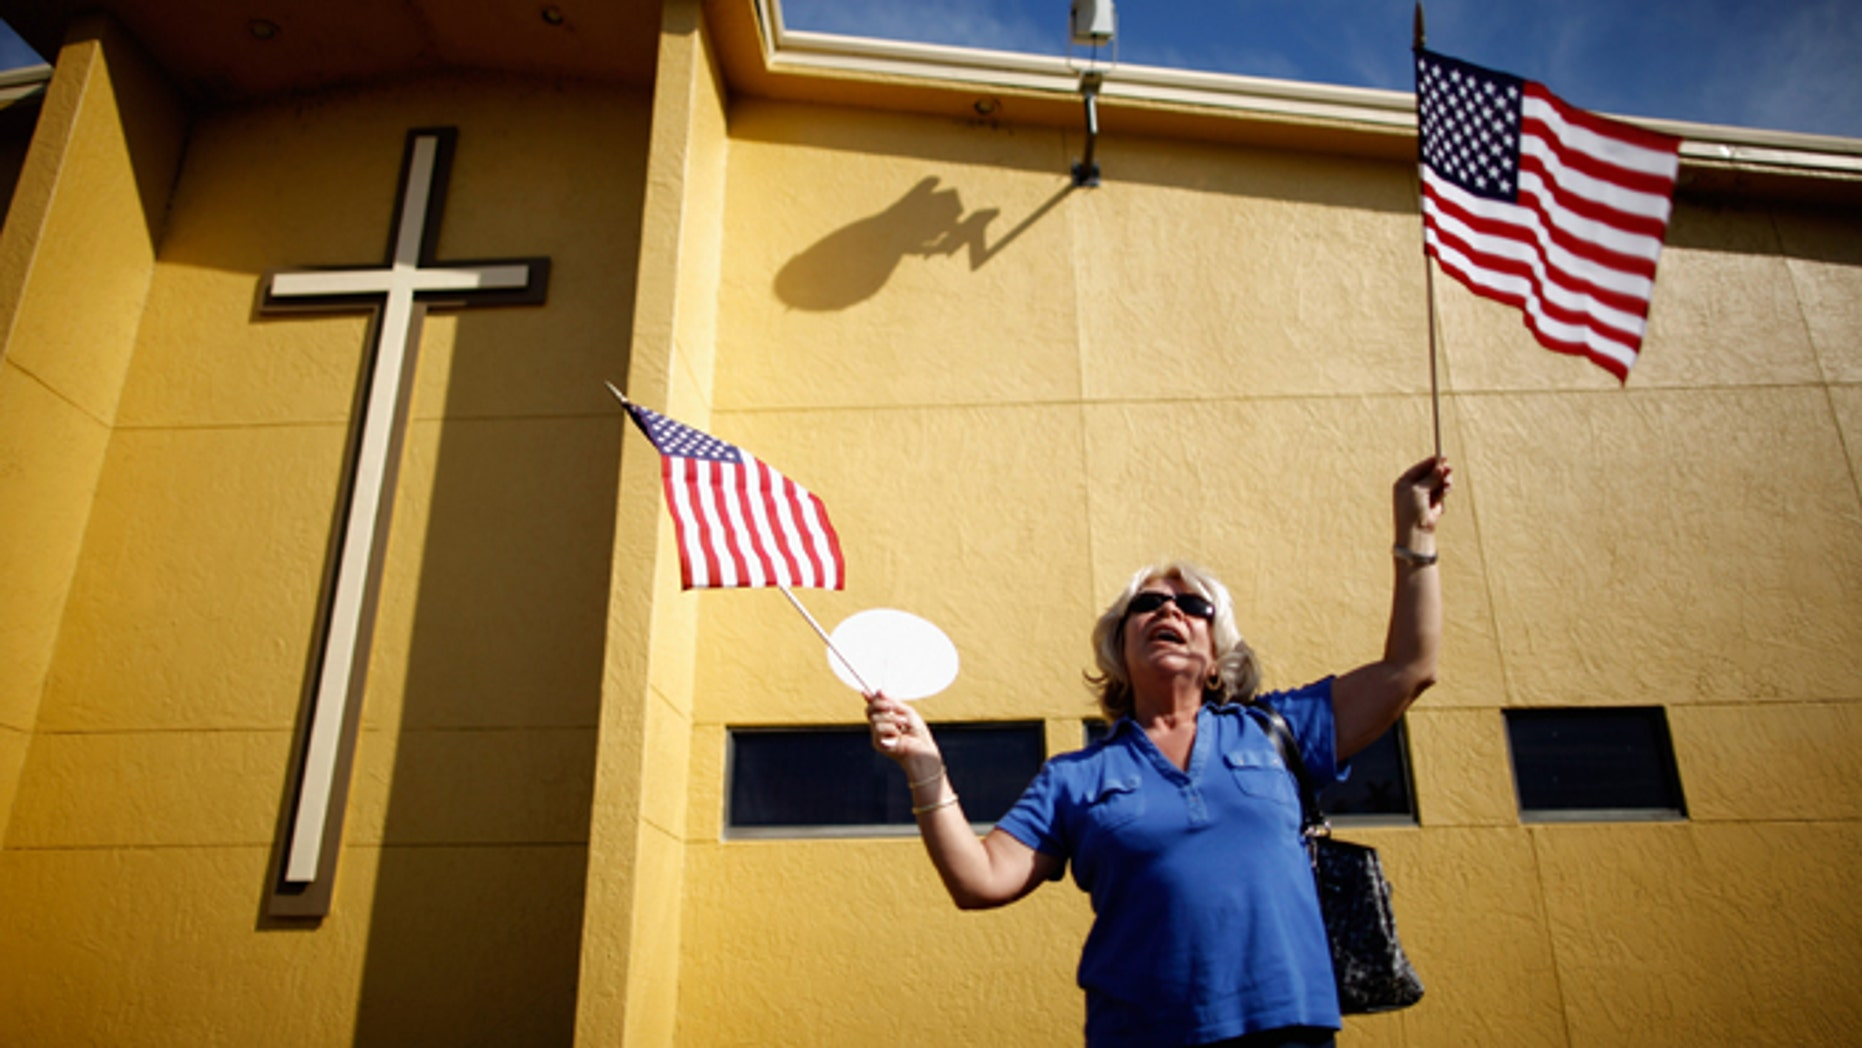 A supporter of Republican presidential candidate and former Speaker of the House Newt Gingrich (R-GA) waits for his arrival outside Centro de la Familia evangelical church January 28, 2012 in Orlando, Florida.